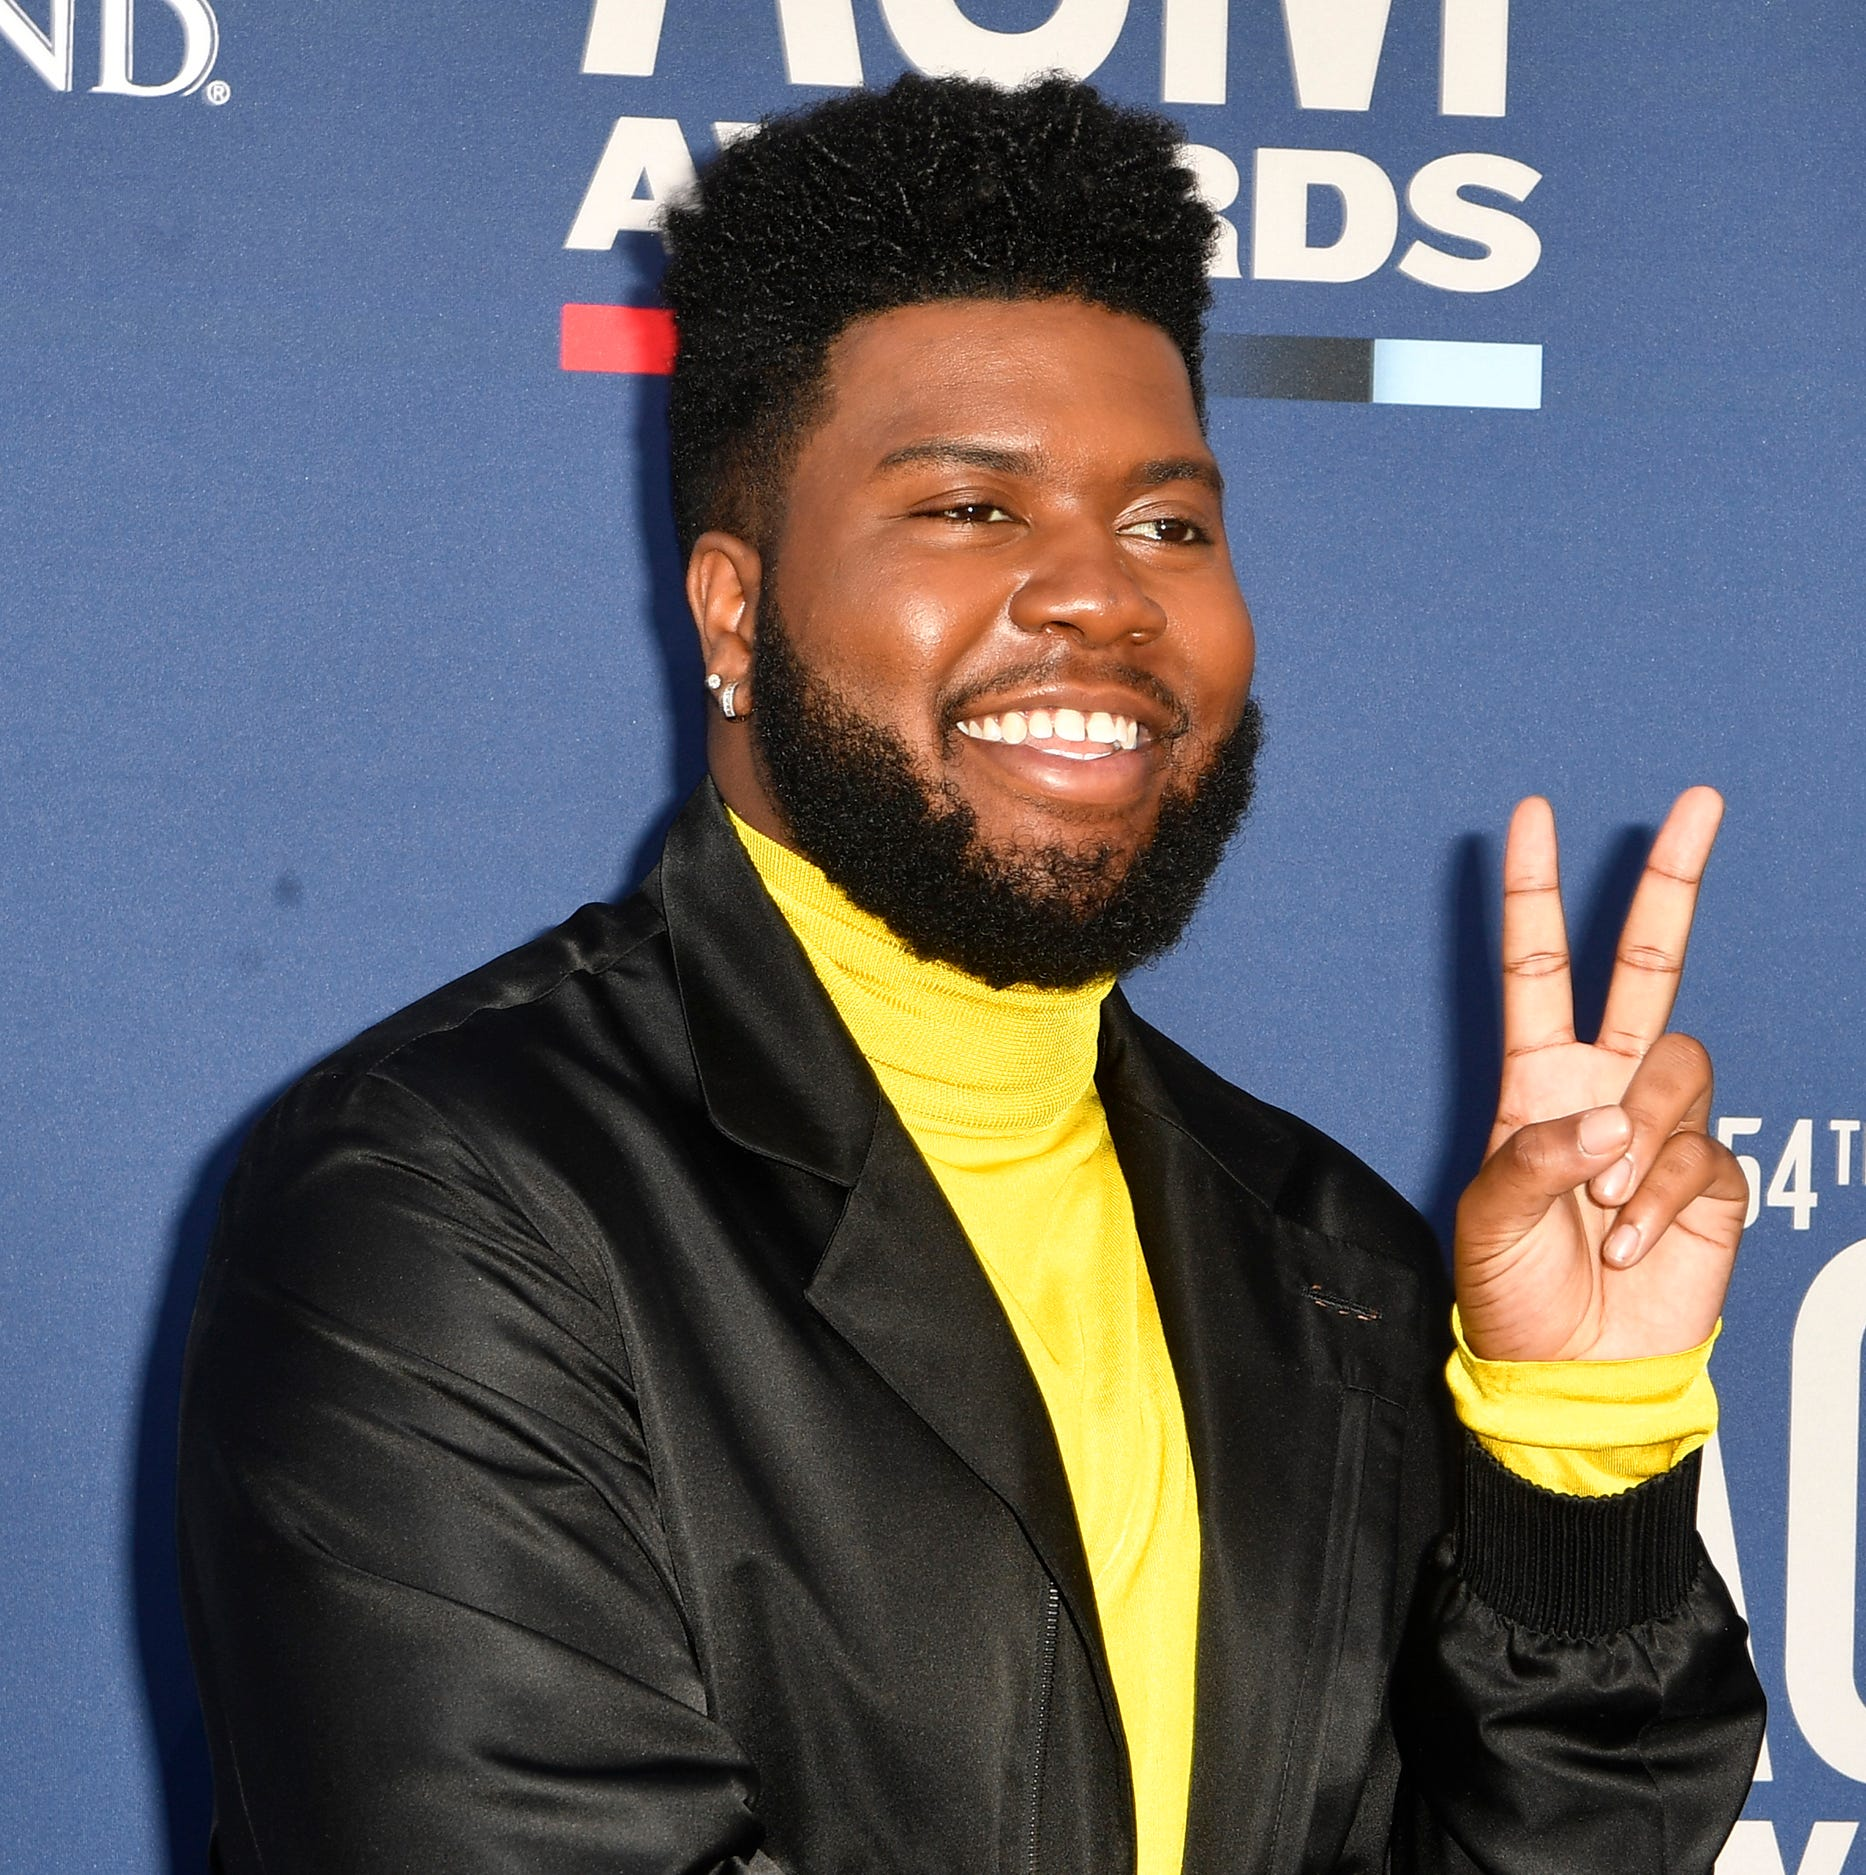 Khalid duet with country star Kane Brown among highlights of ACM Awards